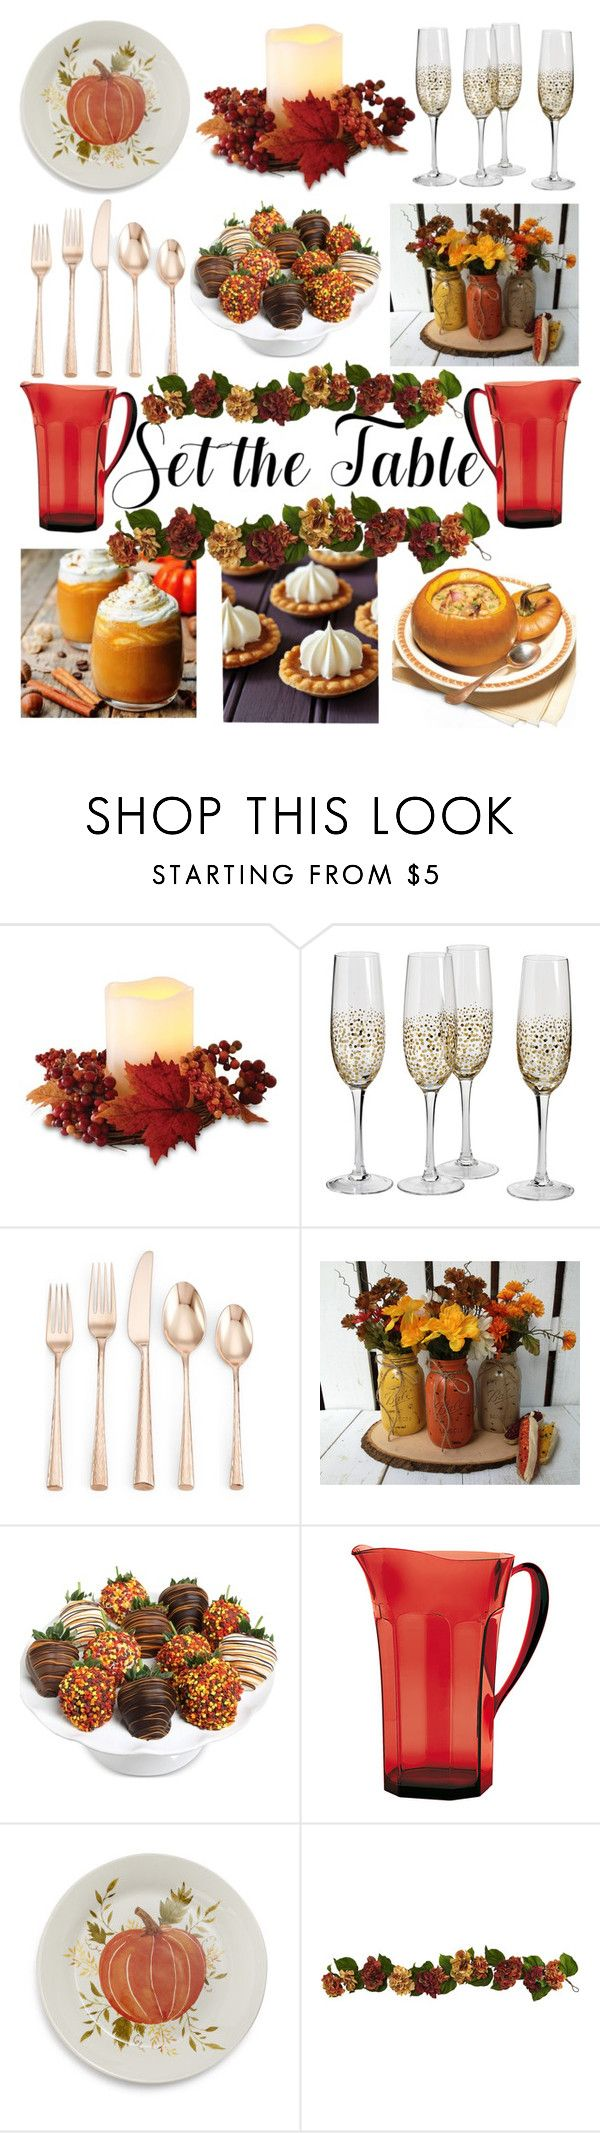 """Autumn, sweet Autumn ~ fall dinner"" by paloveigaa ❤ liked on Polyvore featuring interior, interiors, interior design, home, home decor, interior decorating, Order Home Collection, Lenox, Golden Edibles and Guzzini"